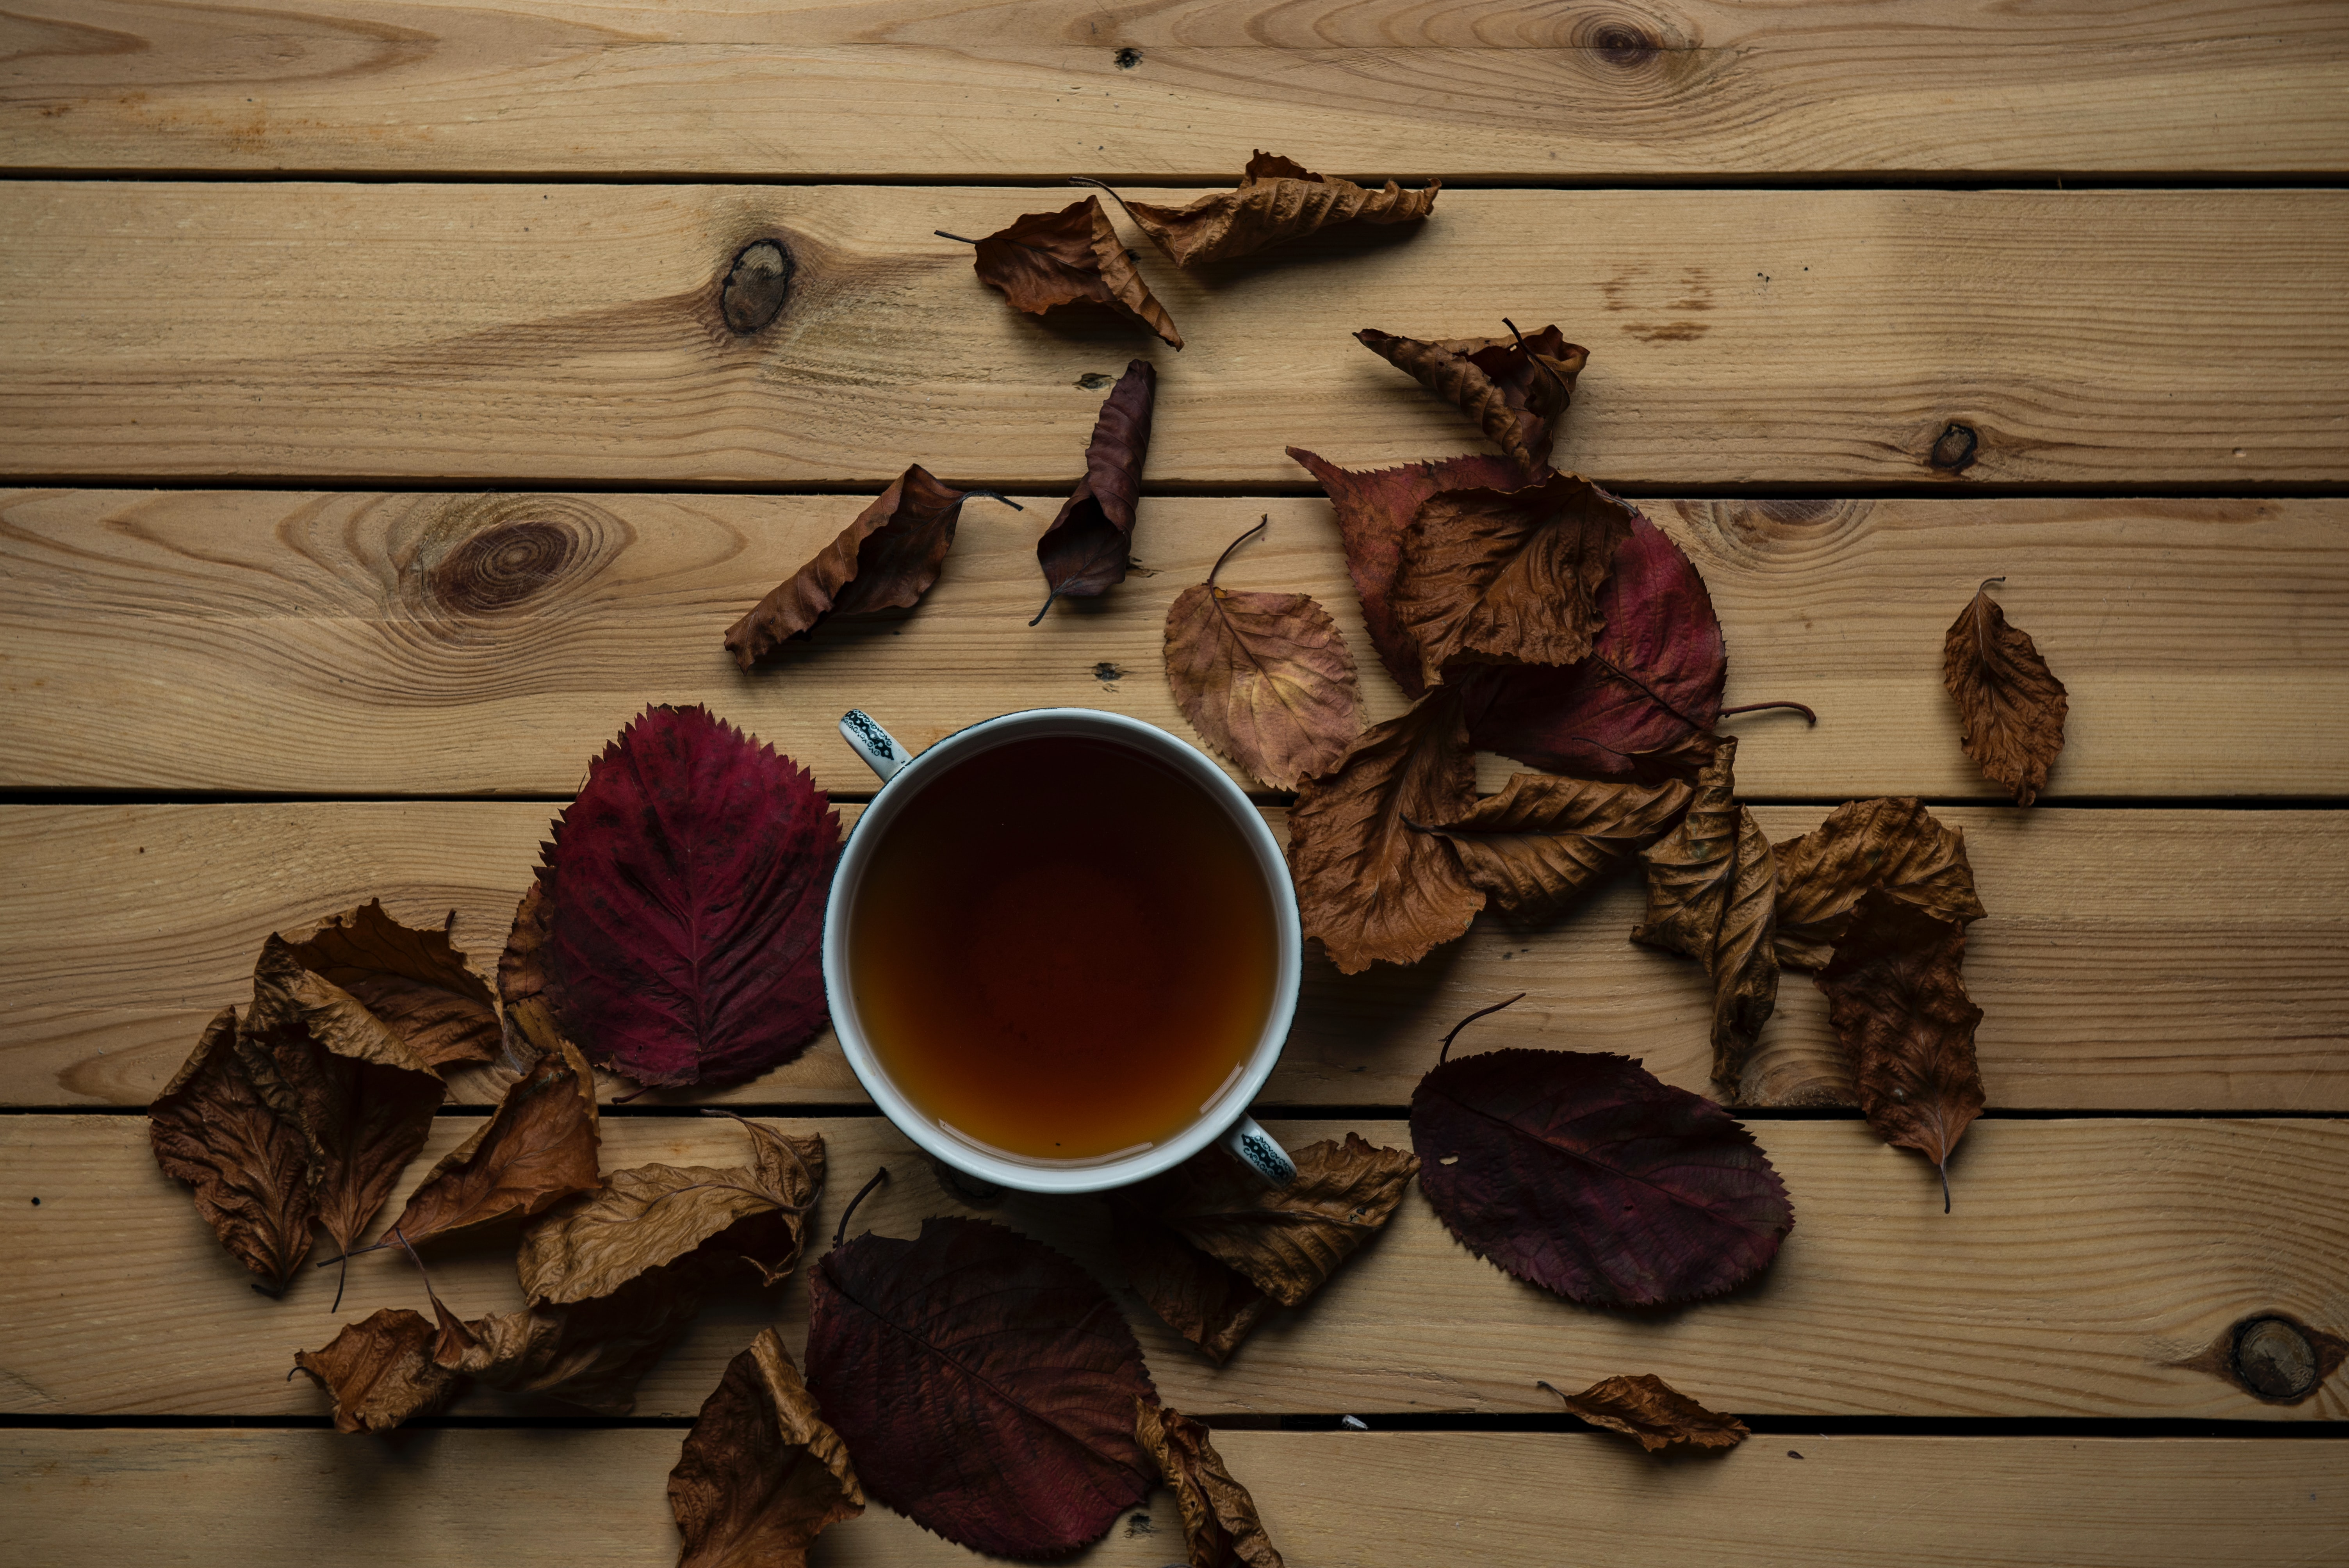 cup of tea in front of a wood background with leaves scattered around the cup